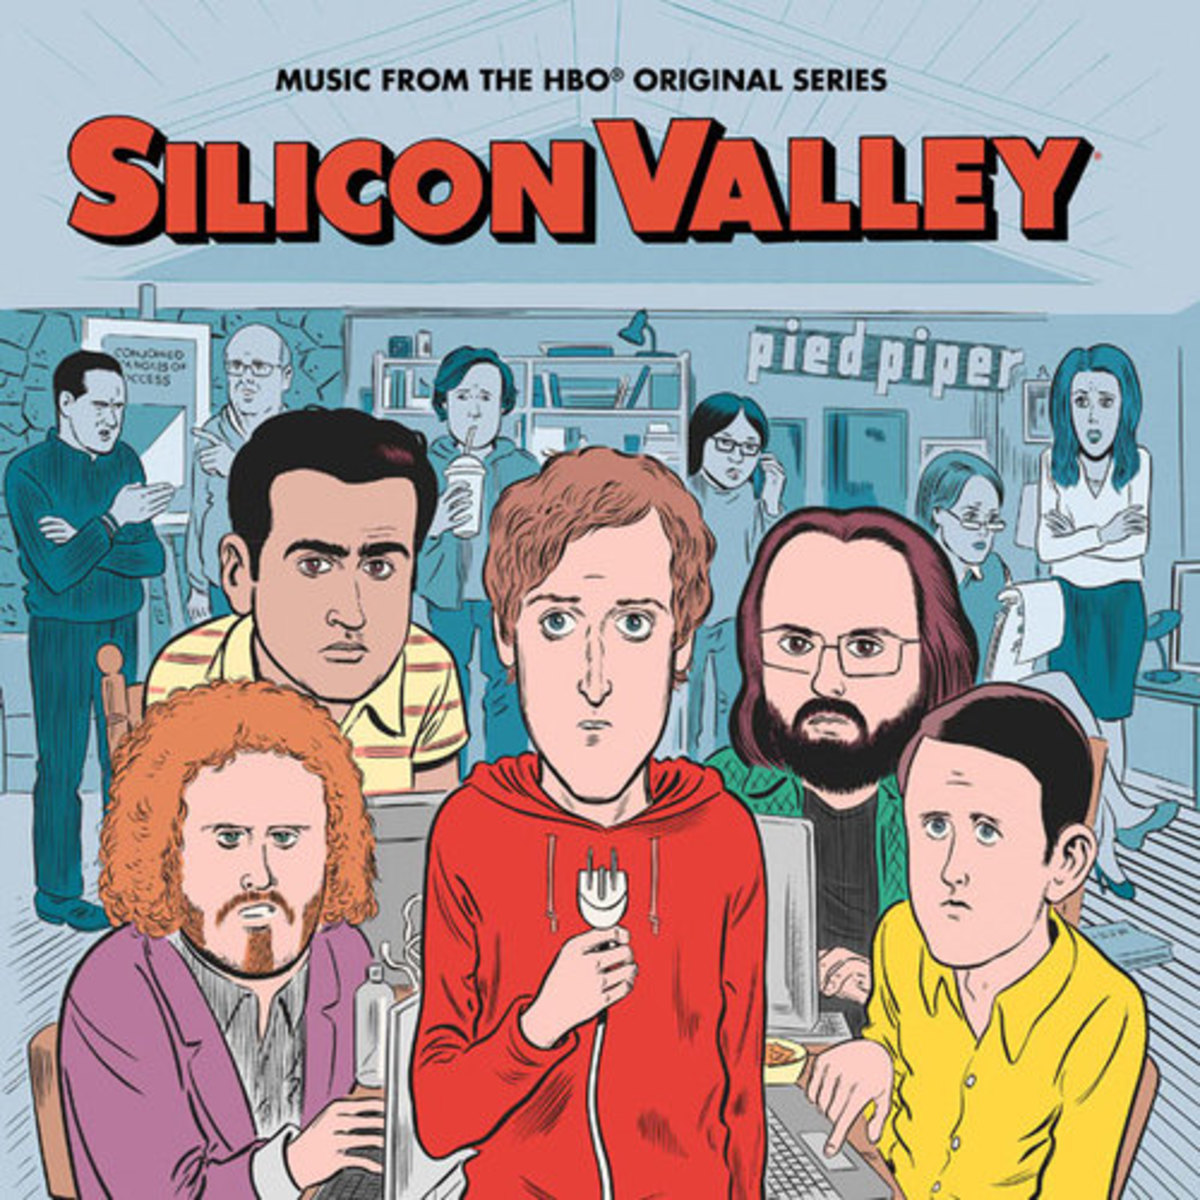 silicon-valley-album-cover-b.jpg